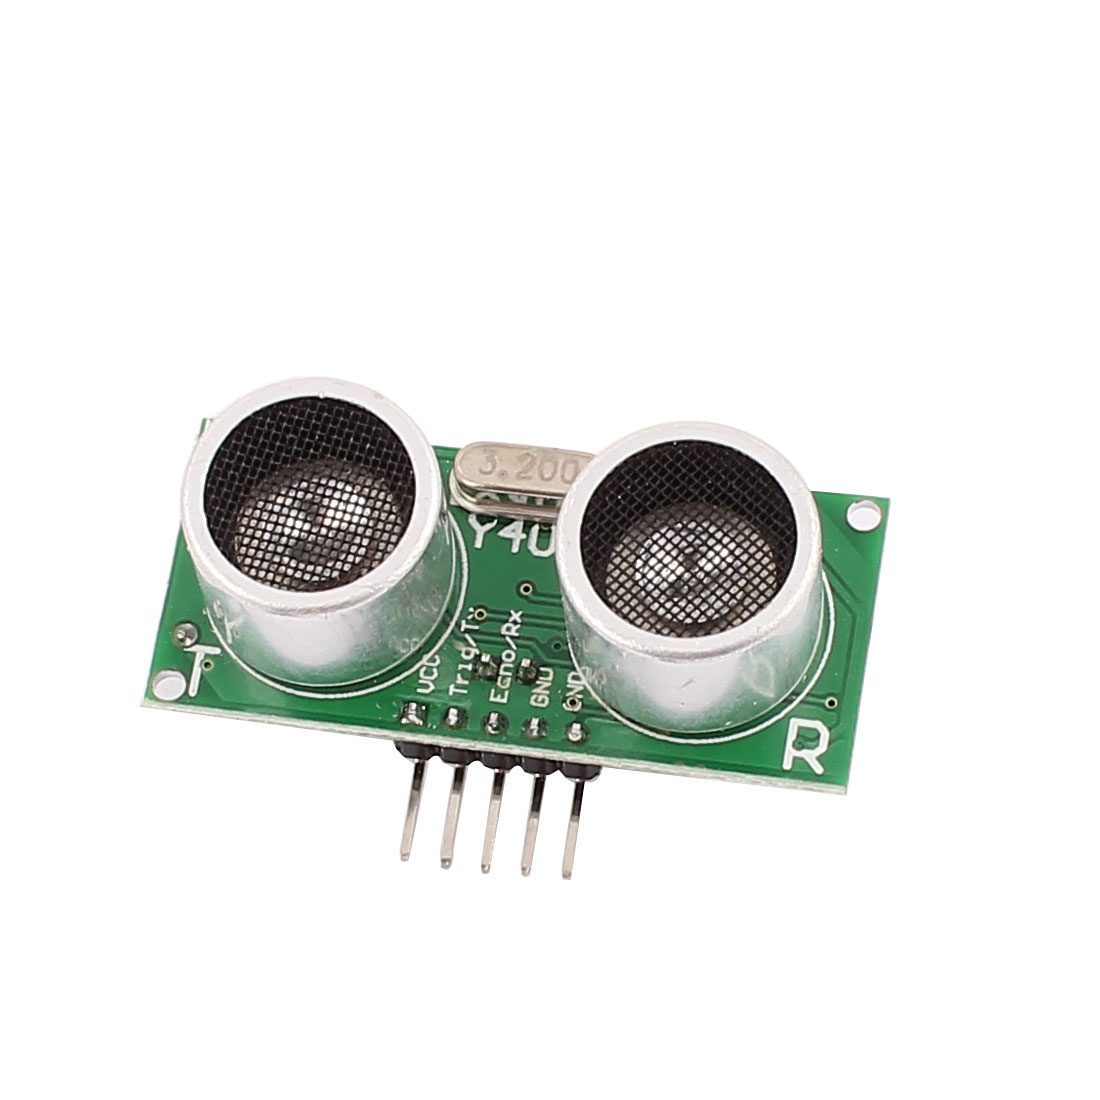 DC 5V Ultrasonic Module HC-SR04 Distance Measuring Transducer Sensor